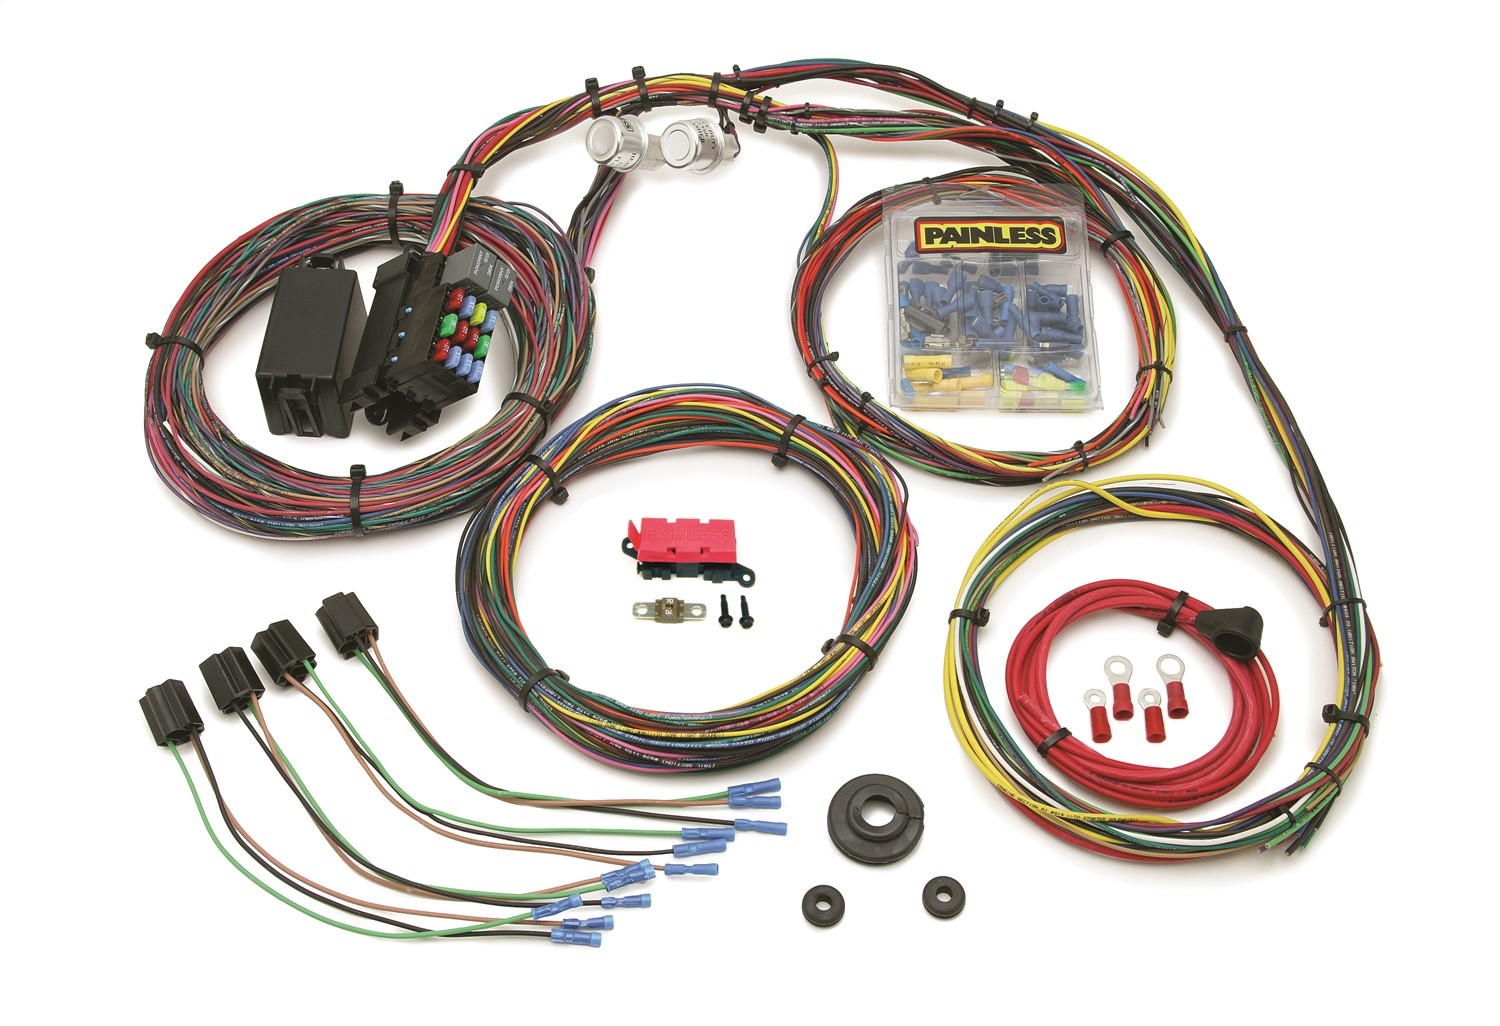 painless wiring 10127 21 circuit customizable mopar color coded chassis harness ebay